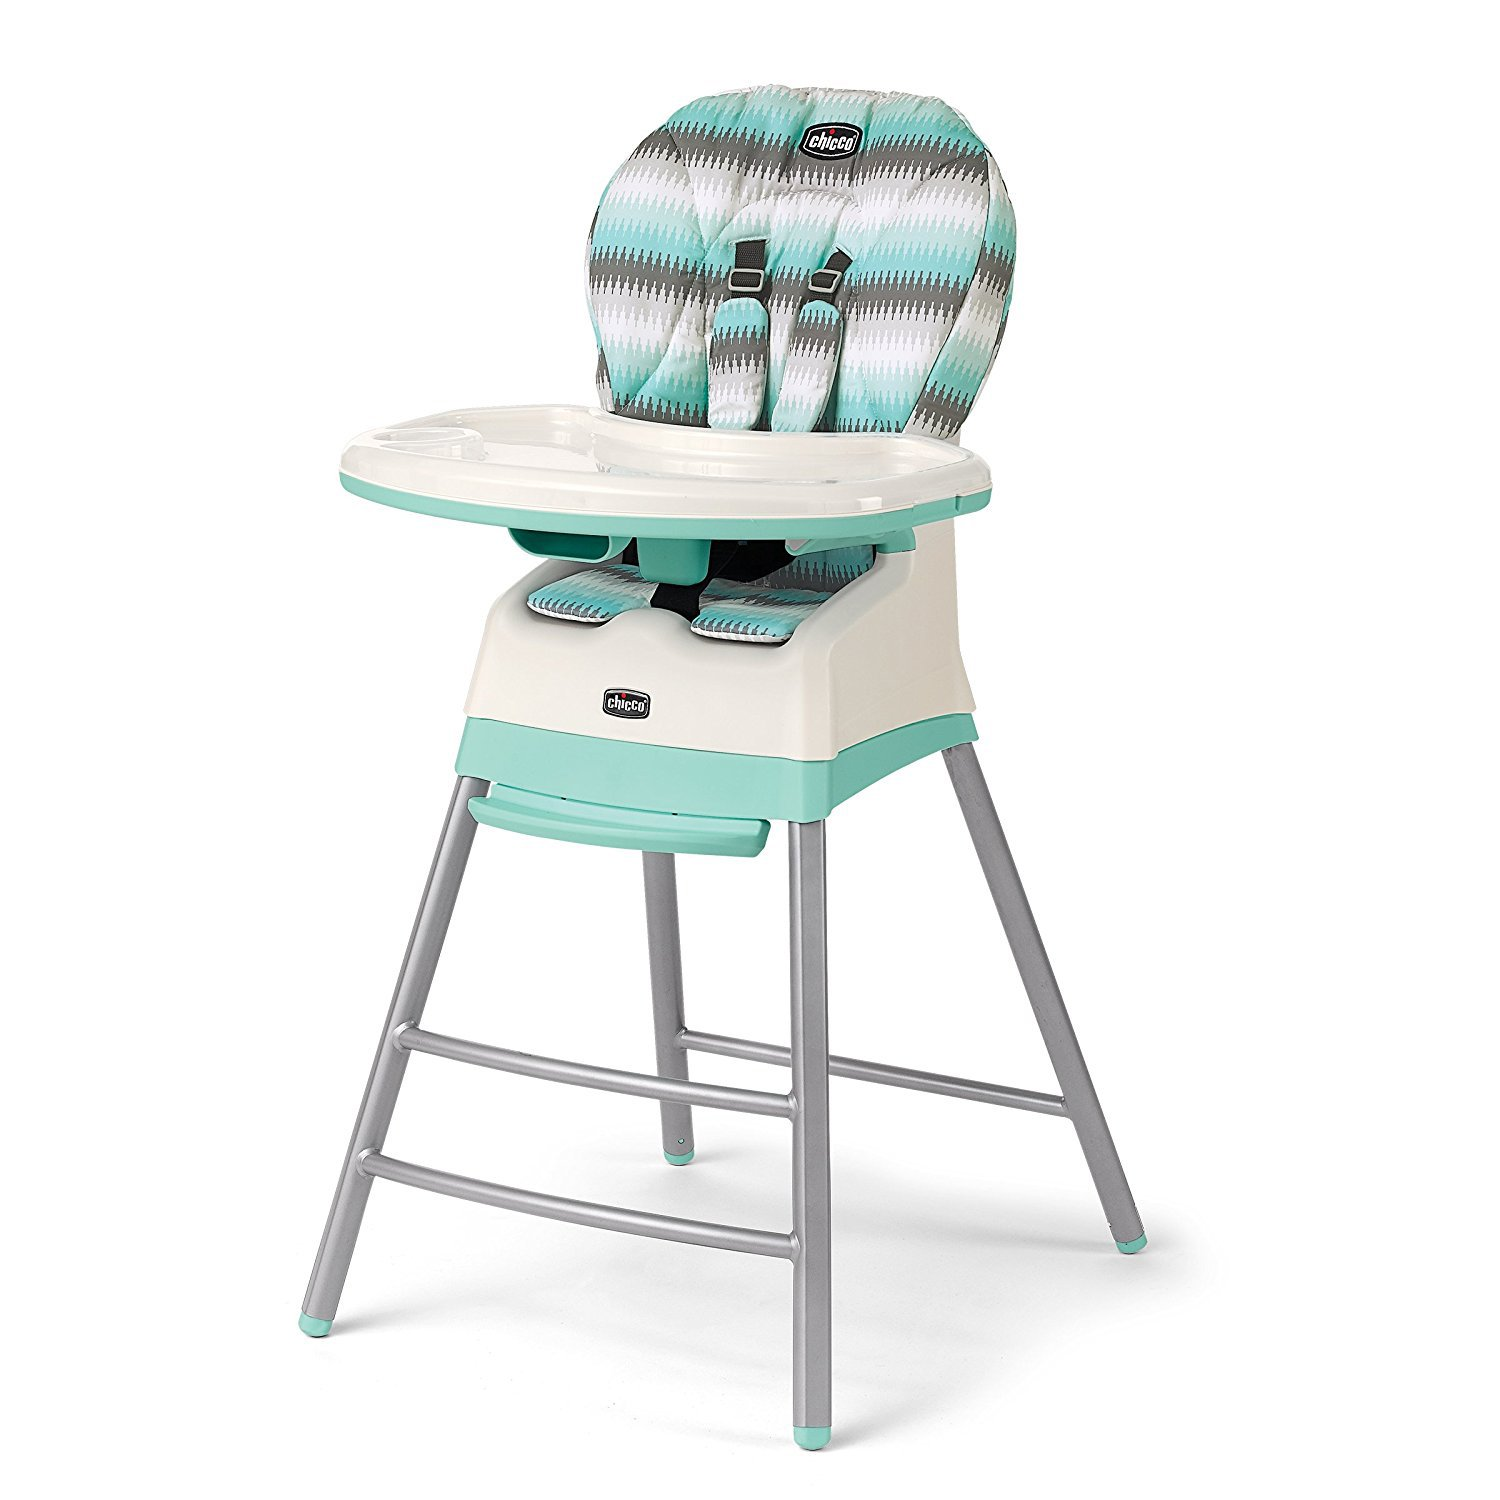 Chicco Stack 3 in 1 Multi Stage Adjustable Portable Highchair